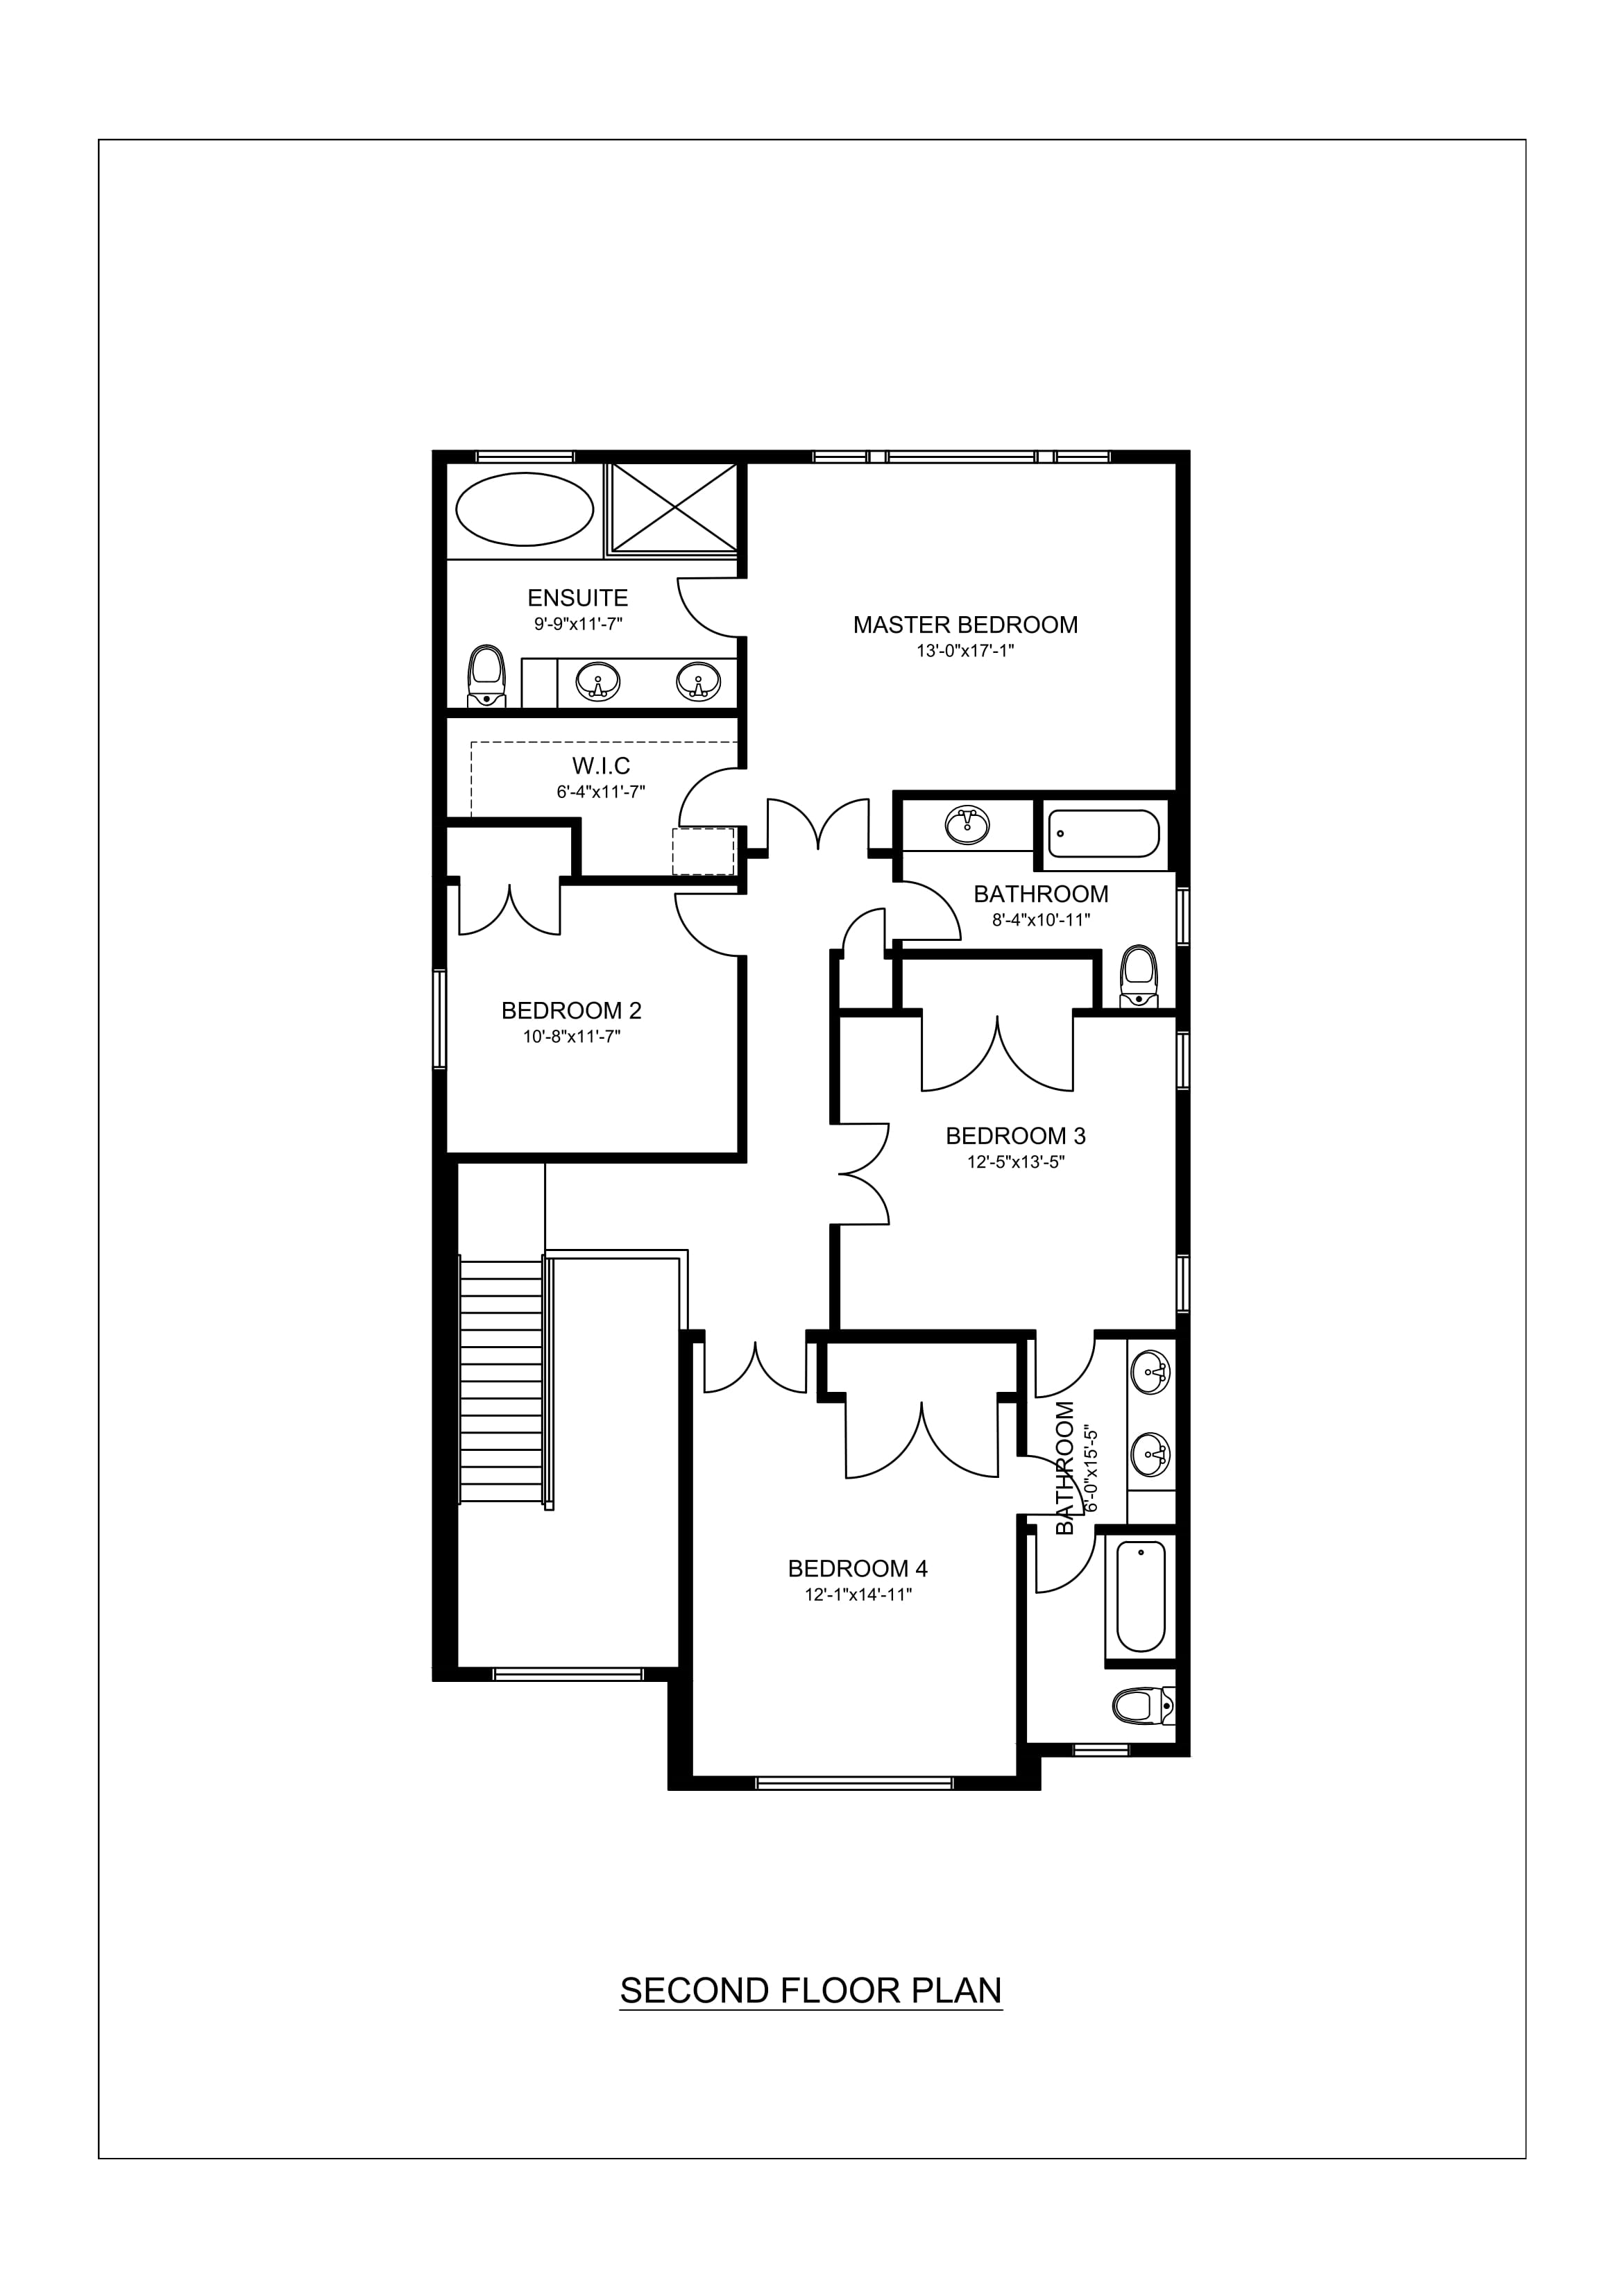 Real estate 2d floor plans design rendering samples for Sample home floor plans